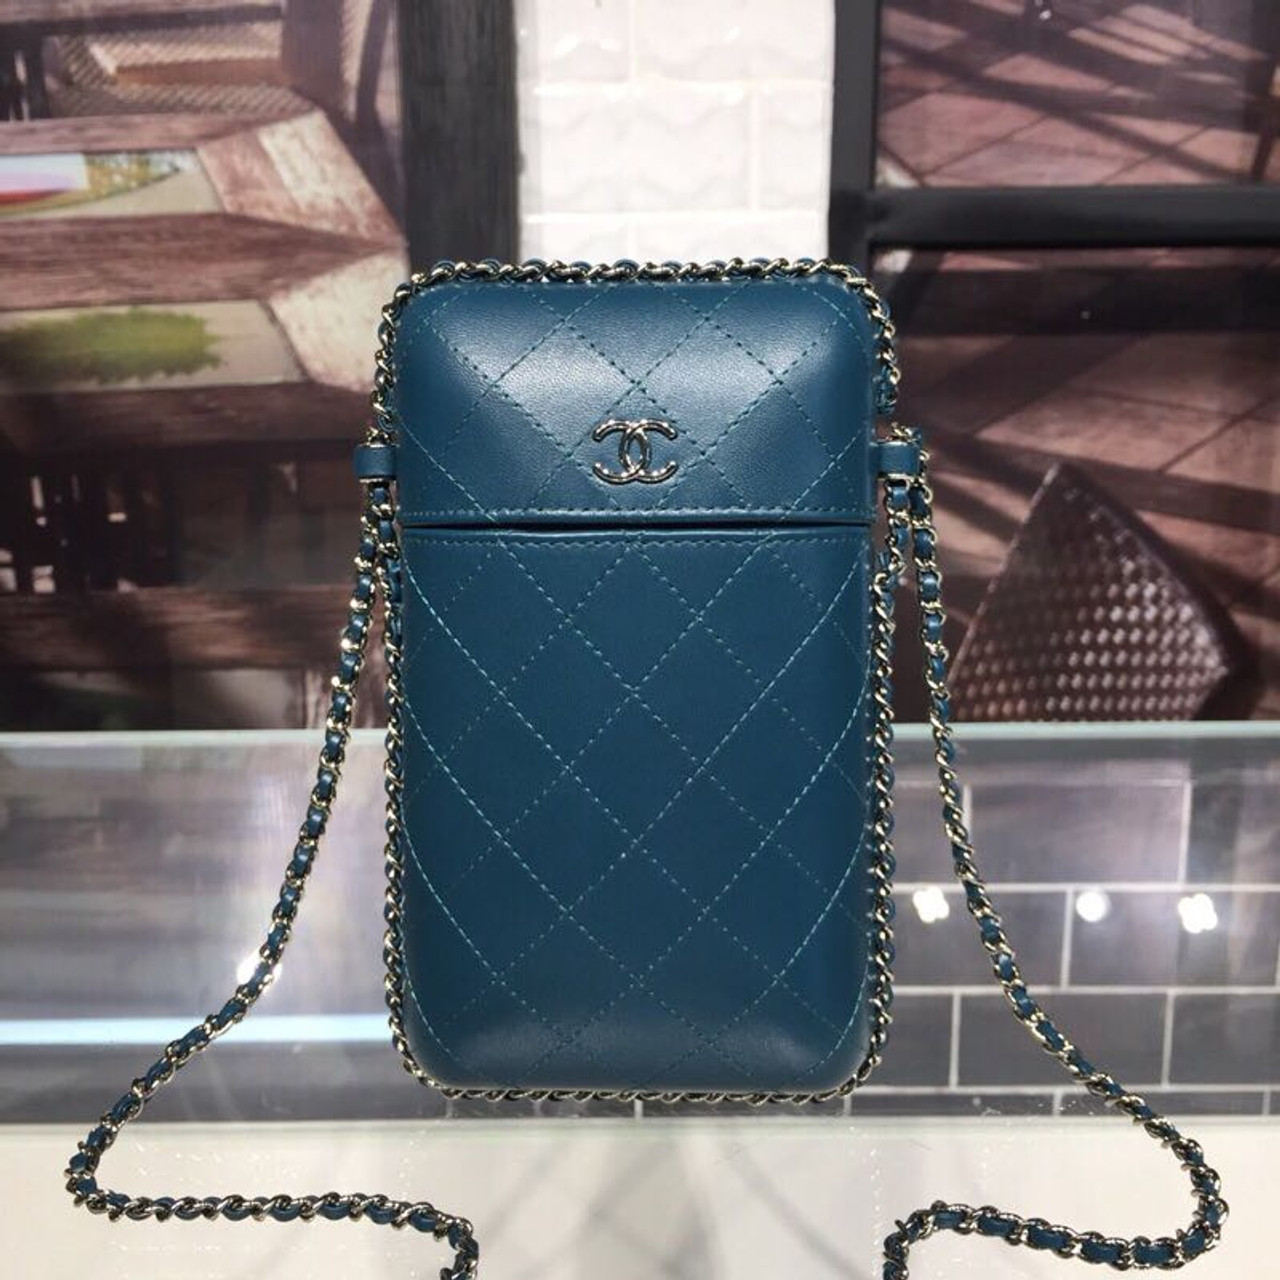 5b2b3ca9c528d1 Chanel Chain Around Phone Holder A94471 12cm Lambskin Leather Fall/Winter  Act 1 2018 Collection